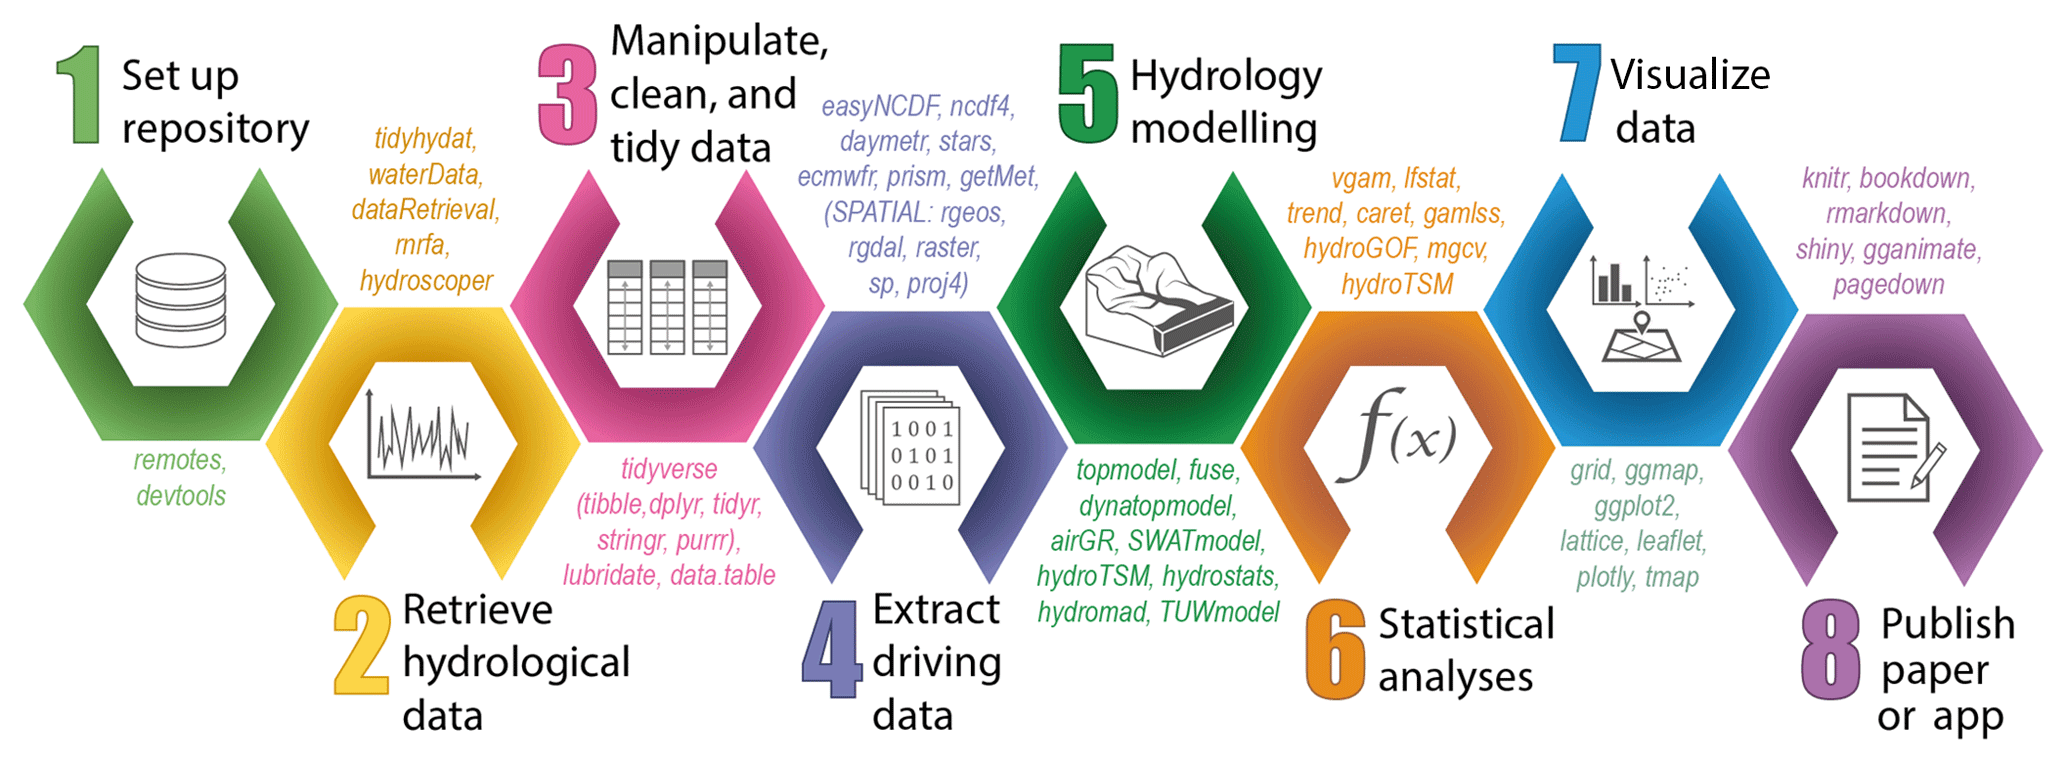 HESS - Using R in hydrology: a review of recent developments and